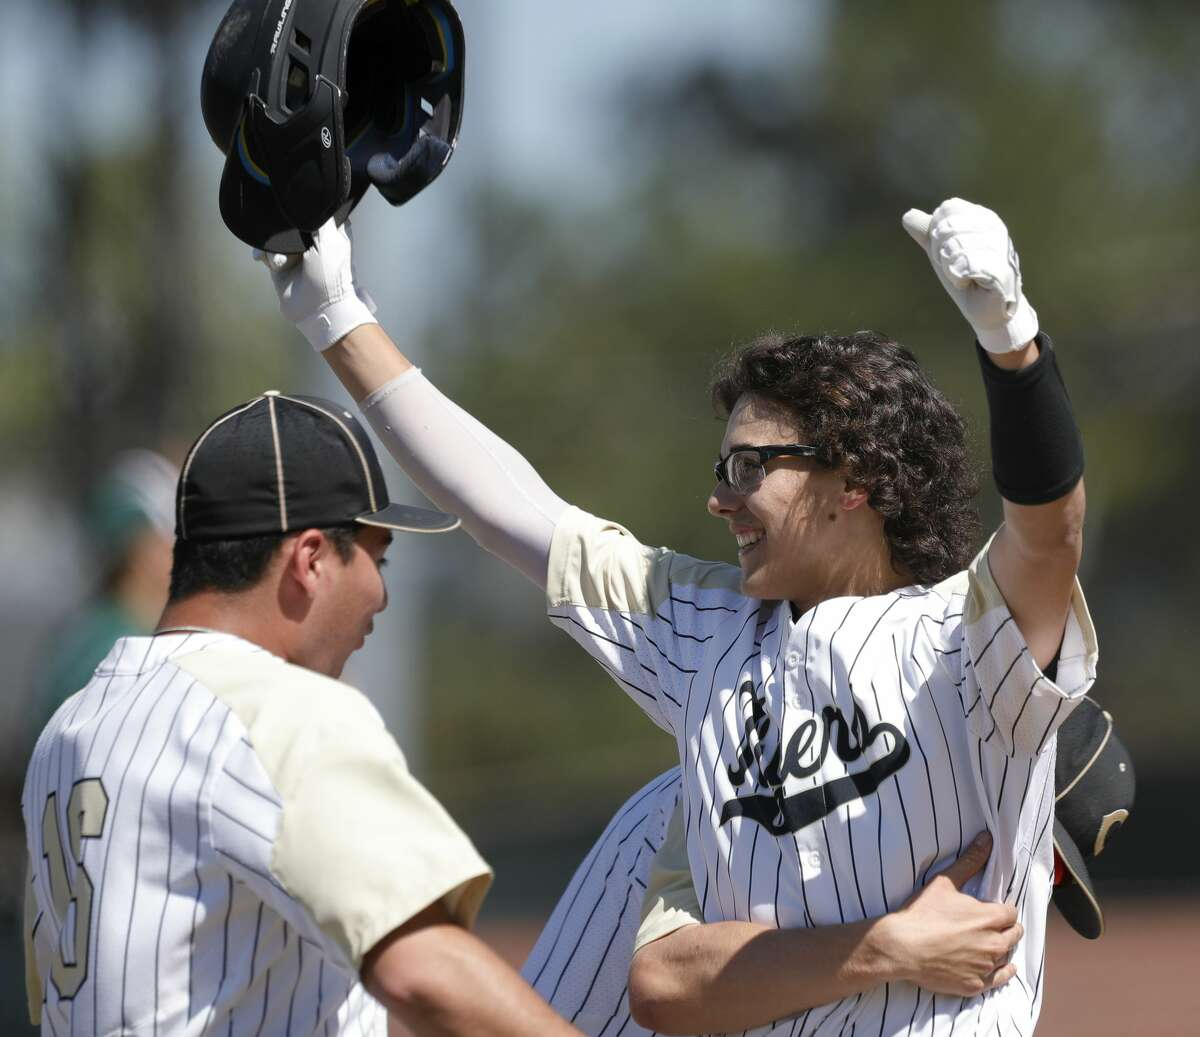 Conroe's Frankie Olivarez reacts after his game-winning, two-run single in the fifth inning of a high school baseball game during the Ferrell Classic at Conroe High School, Thursday, March 5, 2020, in Conroe. Conroe defeated Bryan Rudder 3-2 in five innings due to time limits.